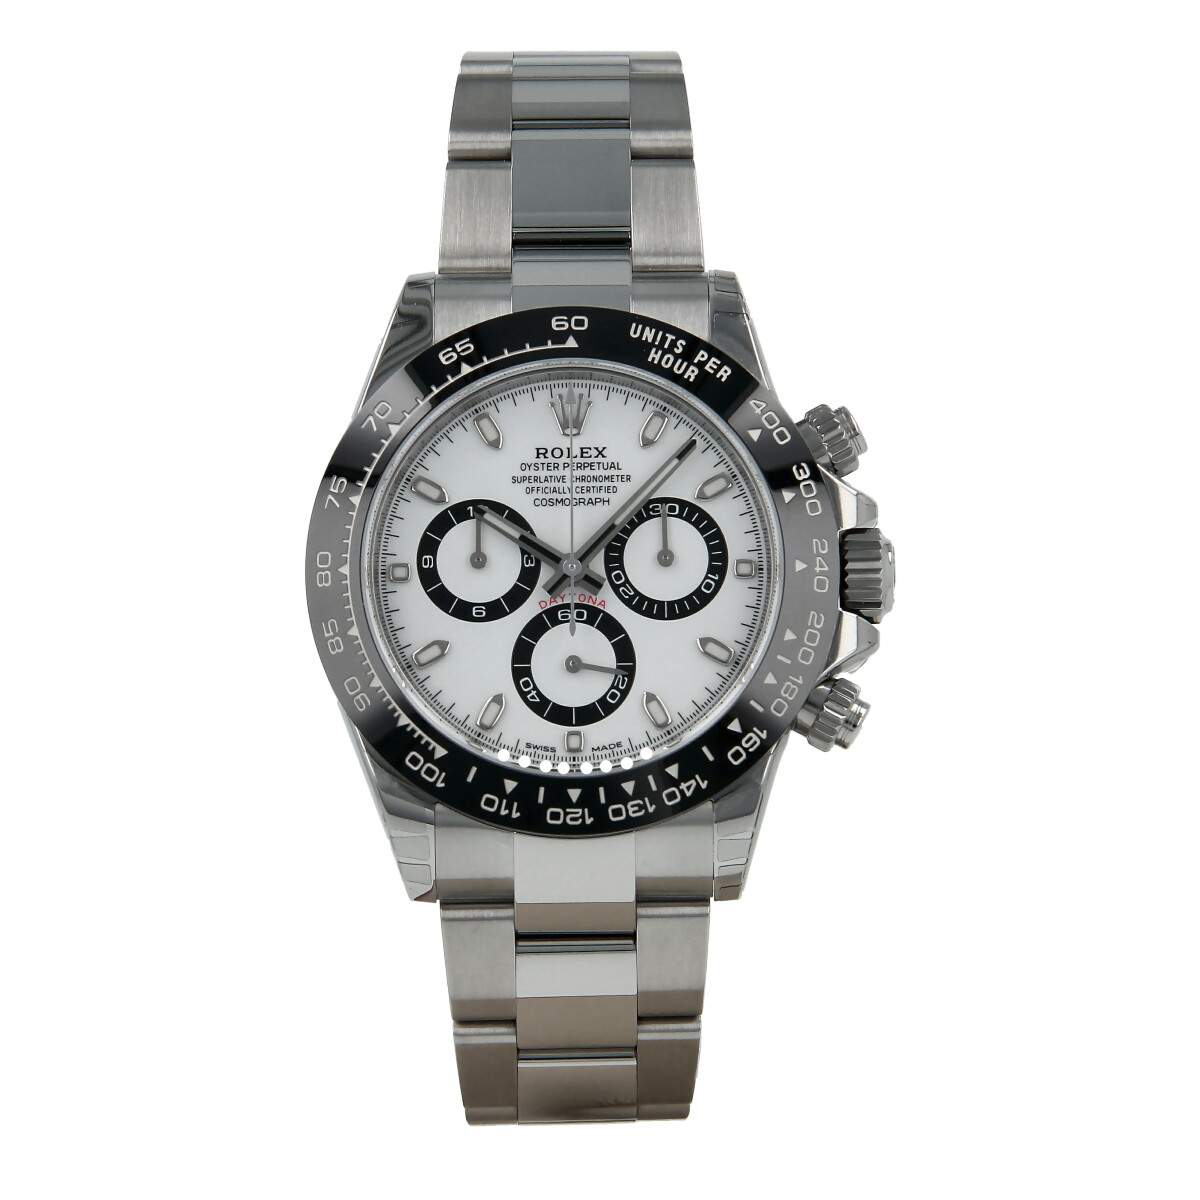 Rolex Cosmograph Daytona 116500LN | Buy pre-owned Rolex watch